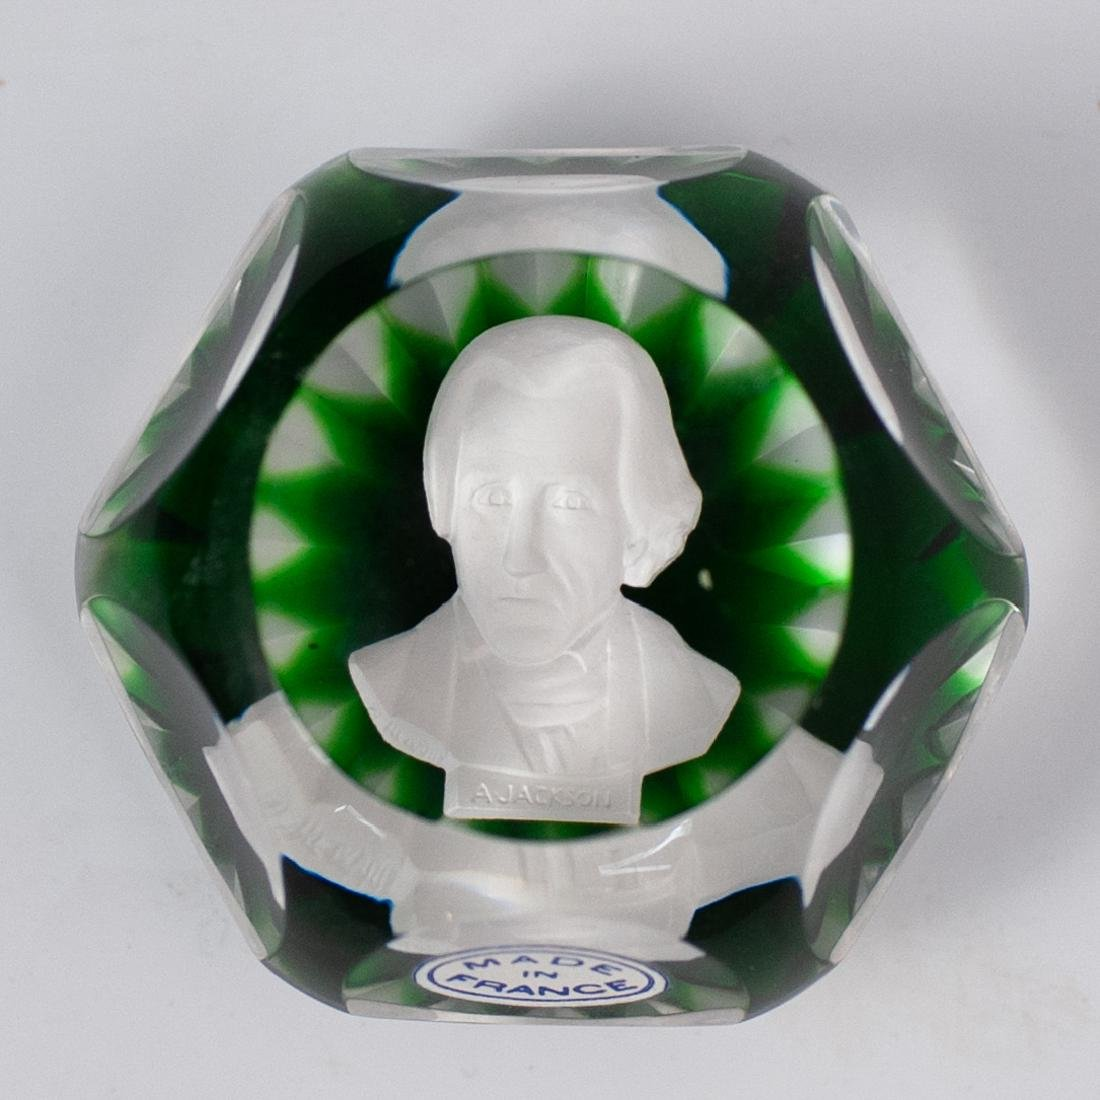 """Baccarat """"Andrew Jackson"""" Paperweight - 2"""